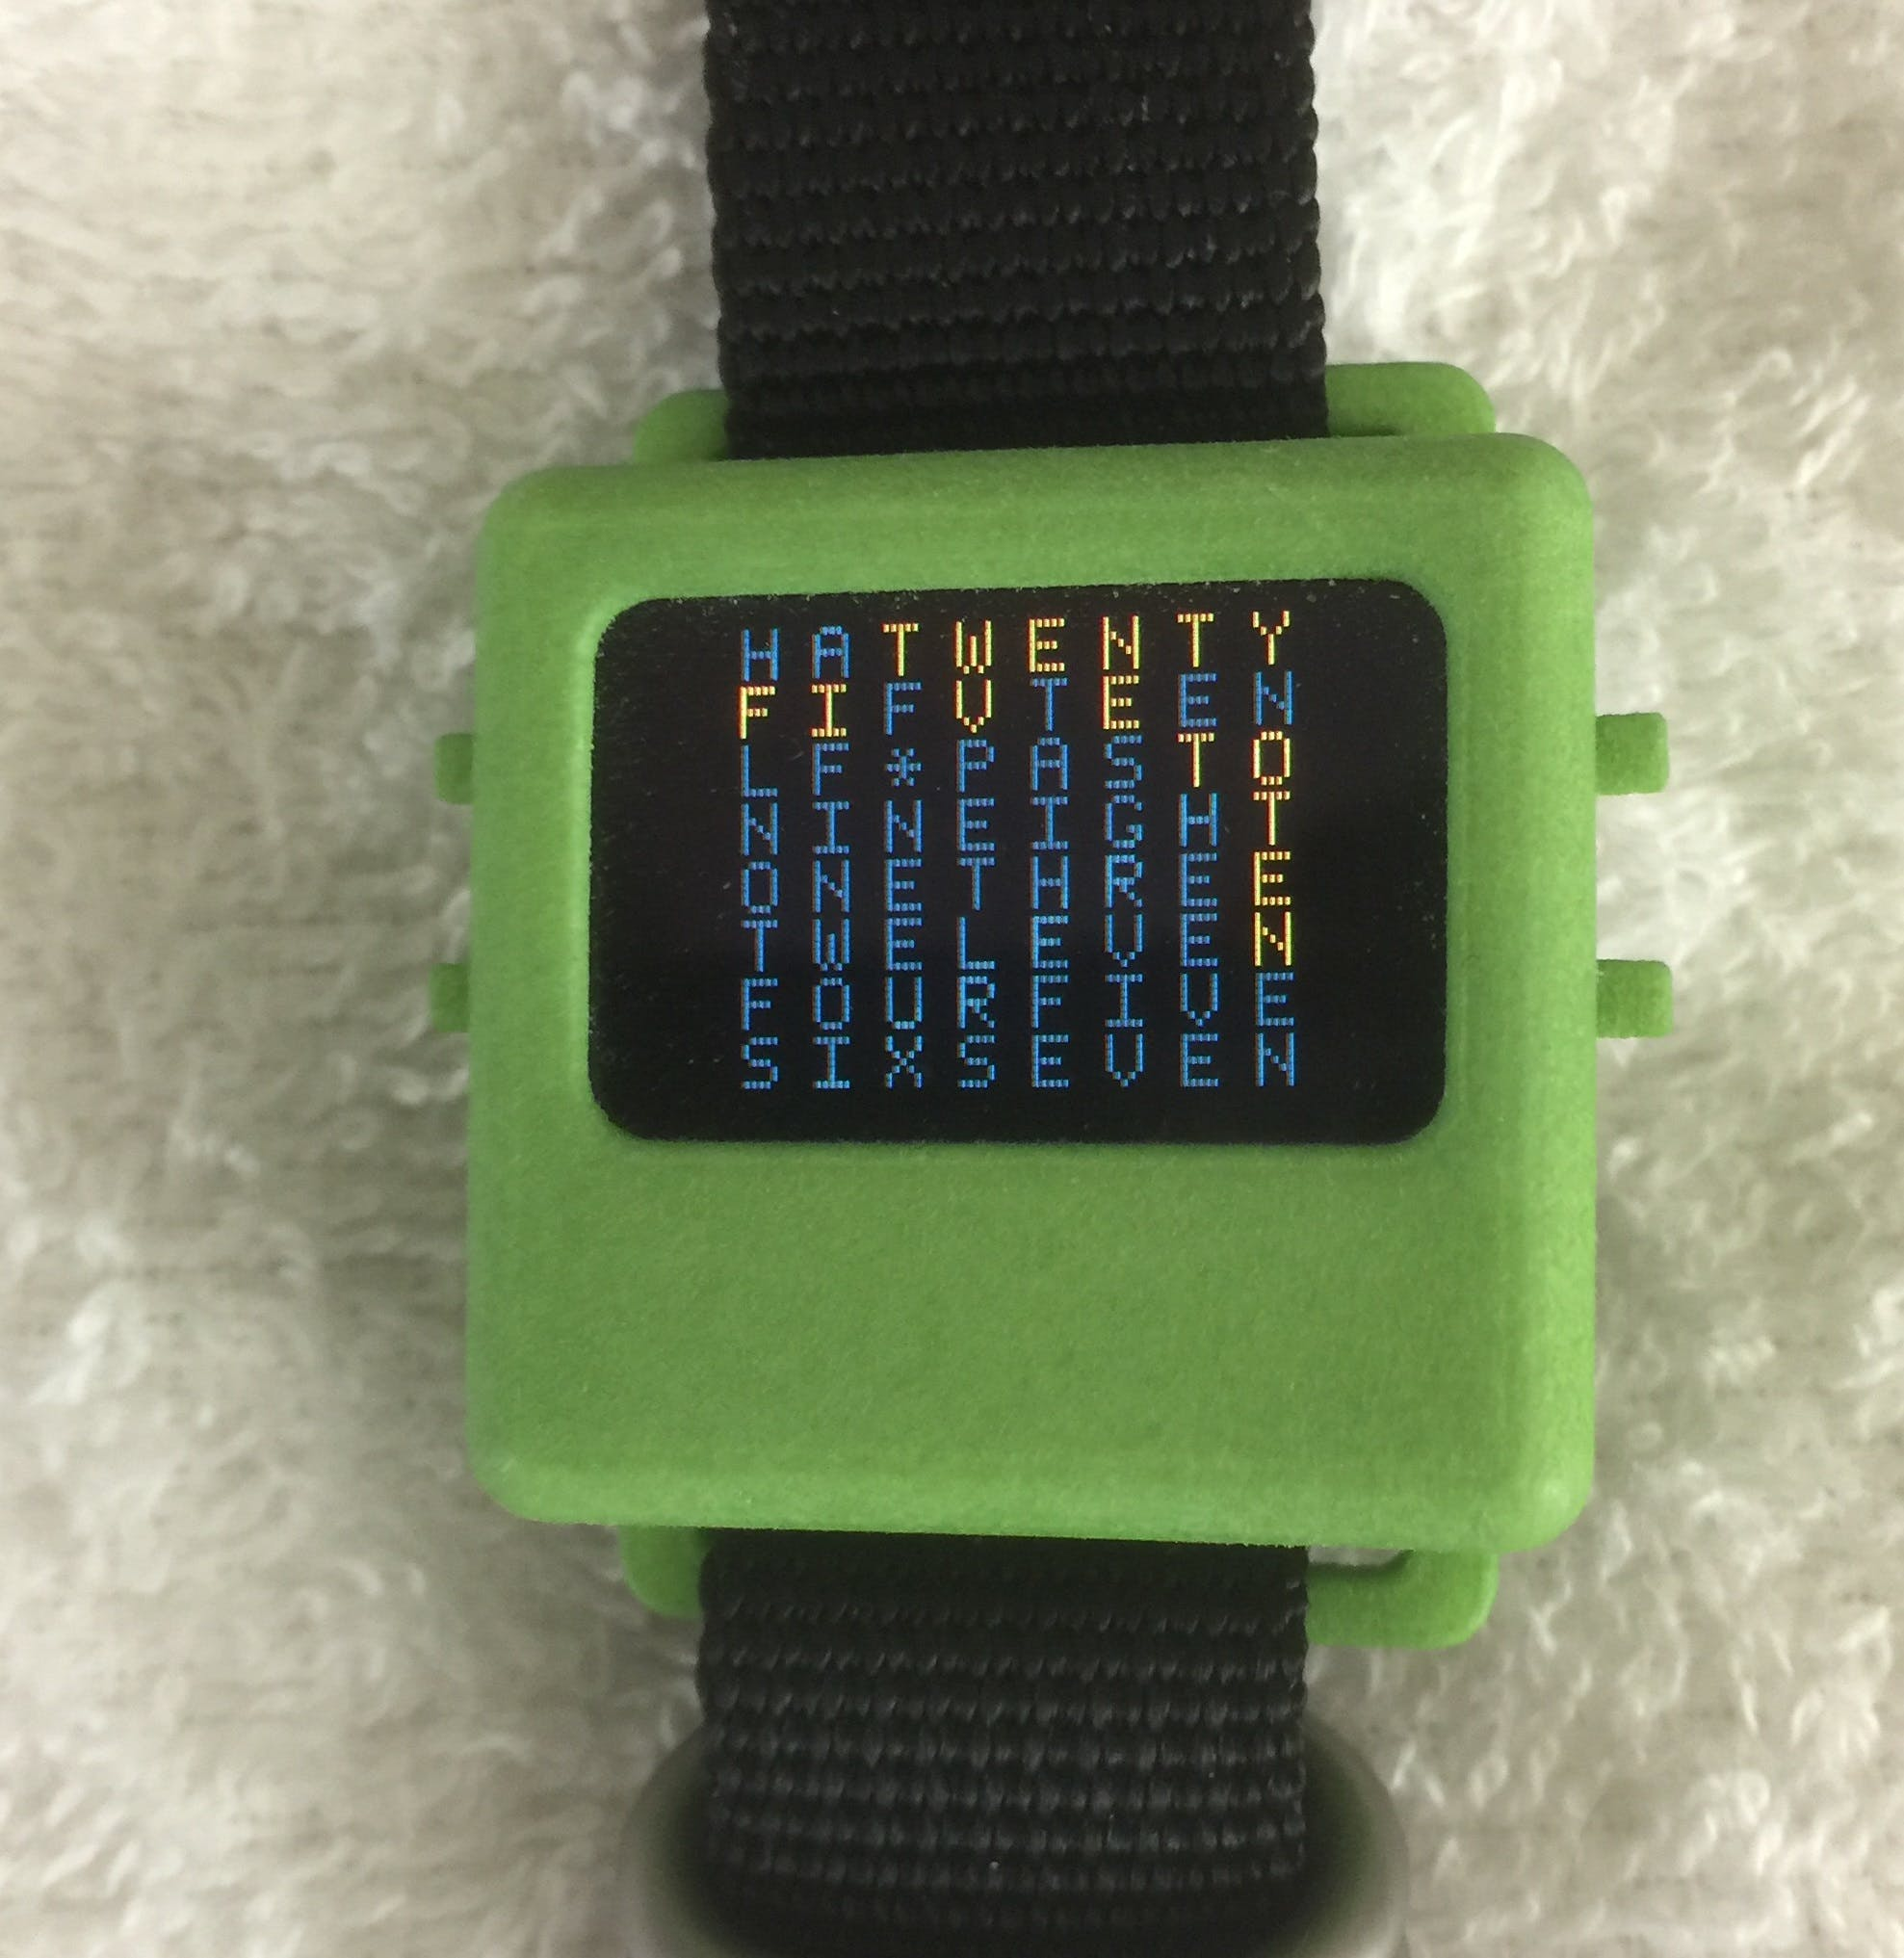 Word Clock on the O-Watch